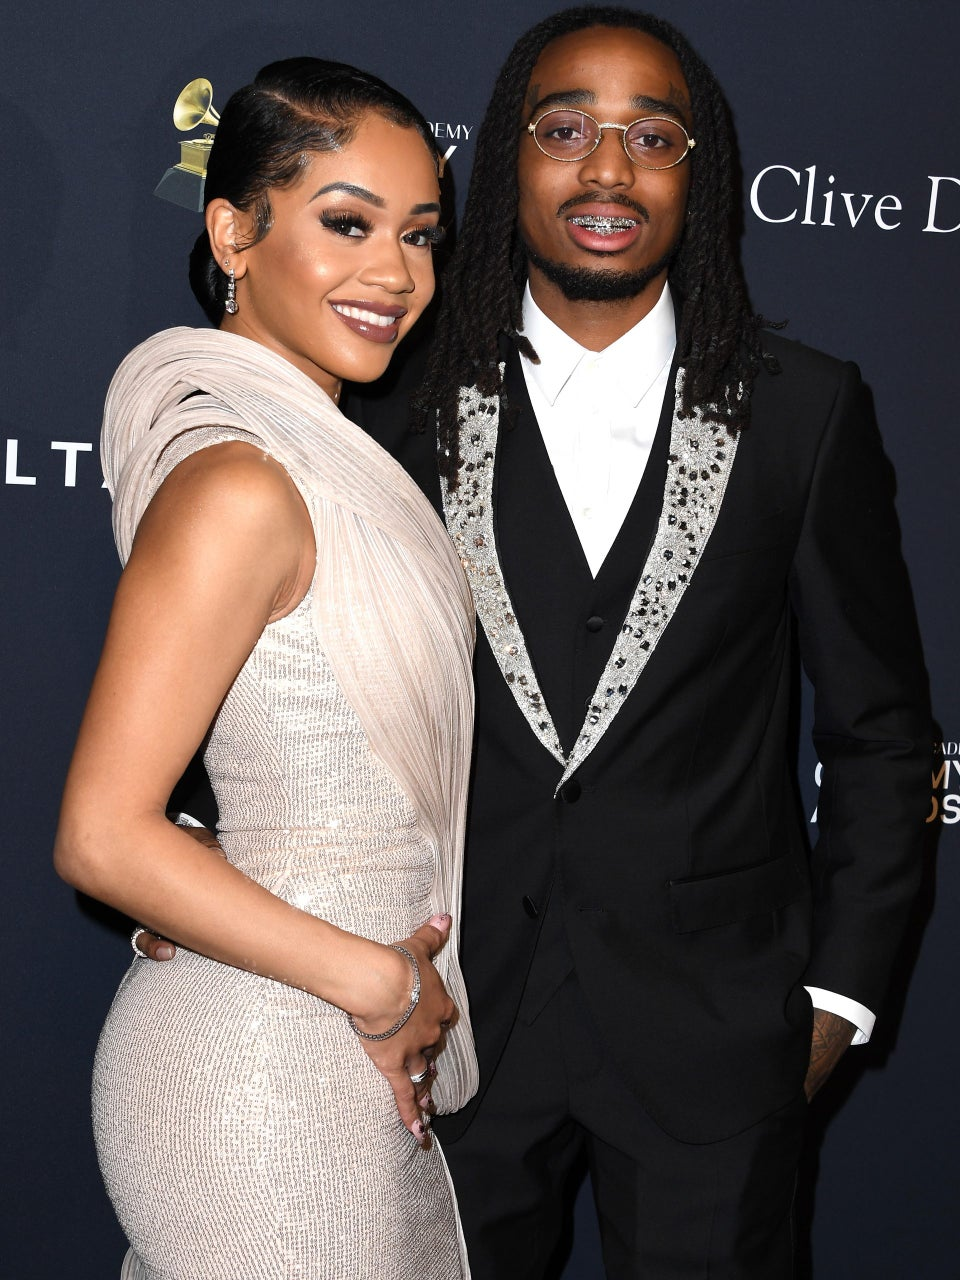 Saweetie Reveals Split From Quavo: 'I've Endured Too Much Betrayal and Hurt'